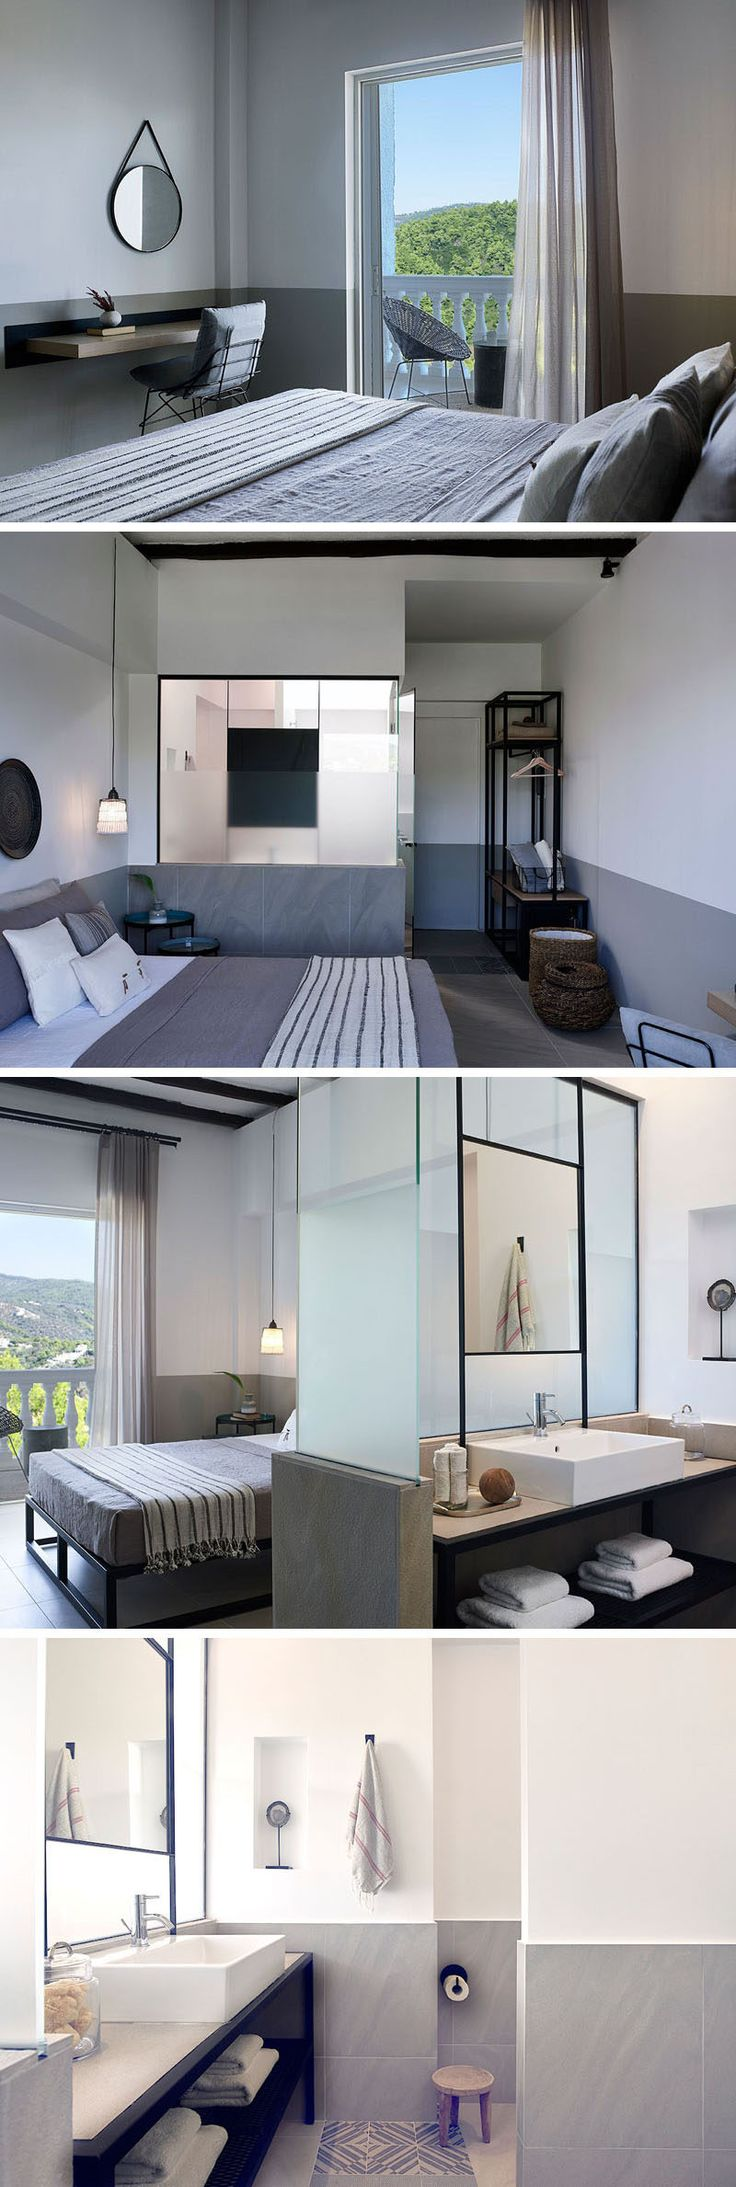 Hotel Room Design: Skiathos Blu Is A Greek Hotel That Puts A Contemporary